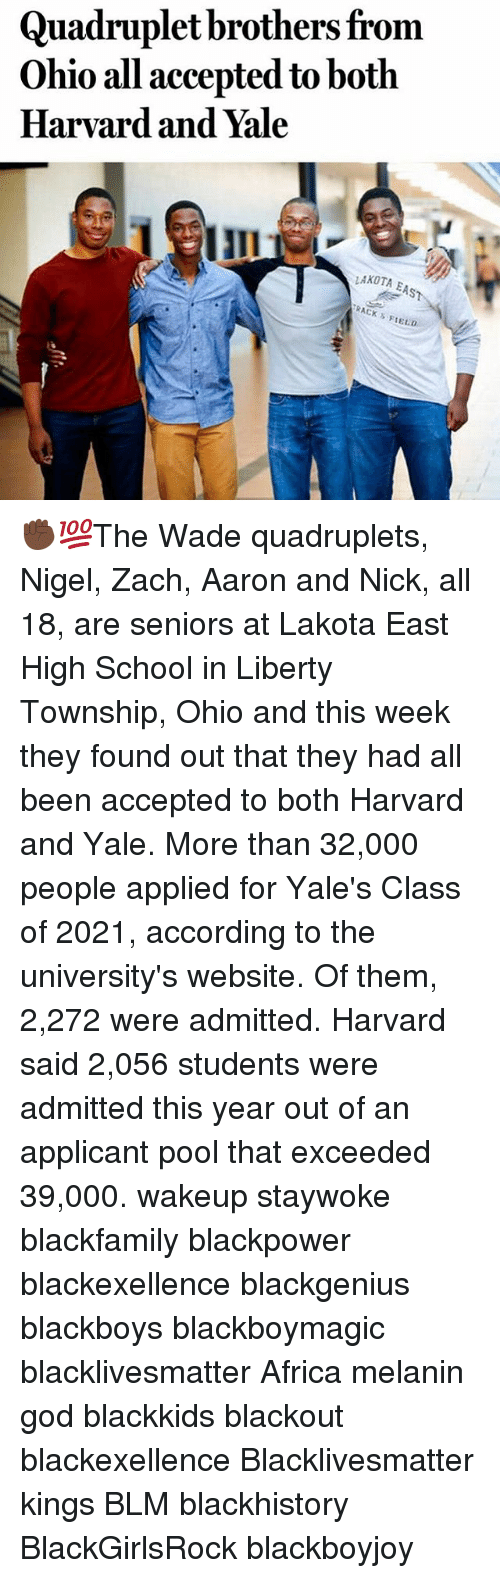 township: Quadruplet brothers from  Ohio all accepted to both  Harvard and Yale  LAKOTA  EAST  TRACK s  FIELD ✊🏿💯The Wade quadruplets, Nigel, Zach, Aaron and Nick, all 18, are seniors at Lakota East High School in Liberty Township, Ohio and this week they found out that they had all been accepted to both Harvard and Yale. More than 32,000 people applied for Yale's Class of 2021, according to the university's website. Of them, 2,272 were admitted. Harvard said 2,056 students were admitted this year out of an applicant pool that exceeded 39,000. wakeup staywoke blackfamily blackpower blackexellence blackgenius blackboys blackboymagic blacklivesmatter Africa melanin god blackkids blackout blackexellence Blacklivesmatter kings BLM blackhistory BlackGirlsRock blackboyjoy